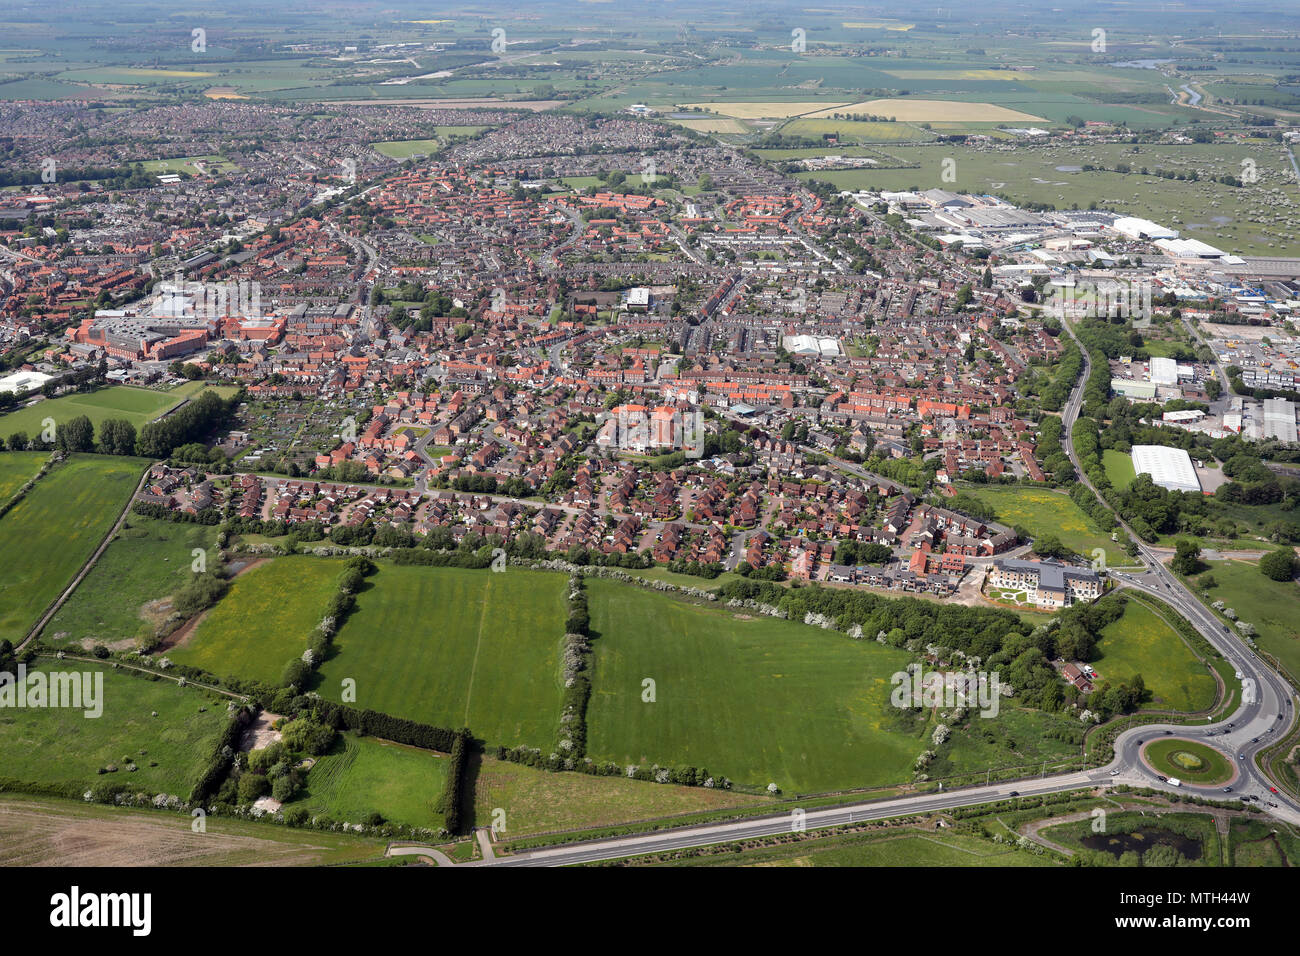 aerial view of Beverley town centre, East Yorkshire, UK - Stock Image